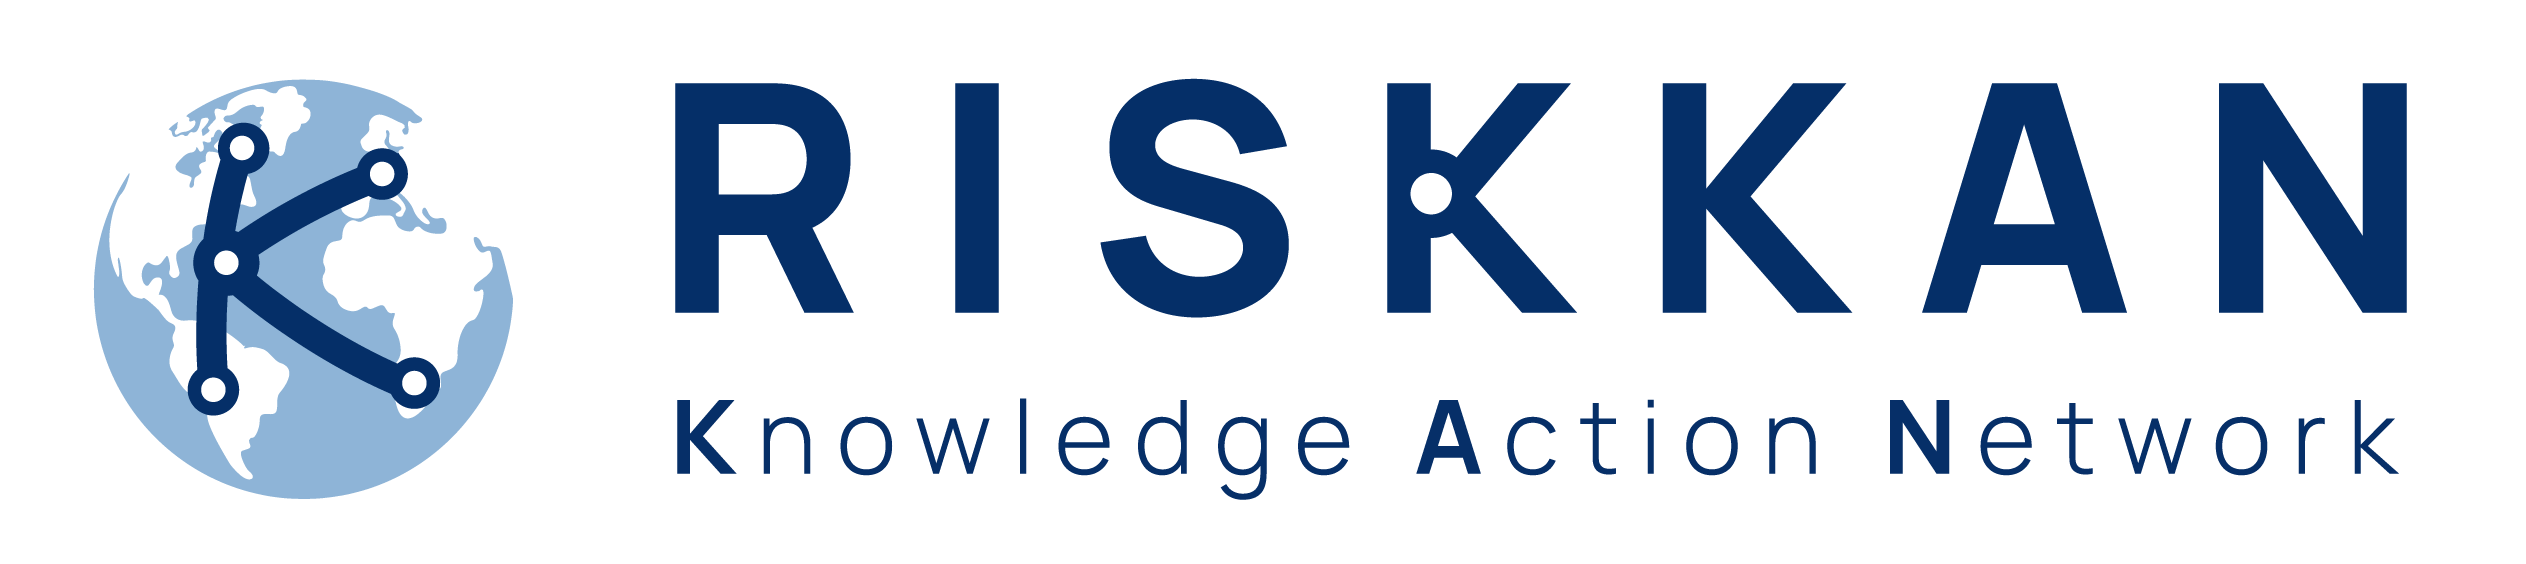 Knowledge Action Network on Emergent Risks and Extreme Events